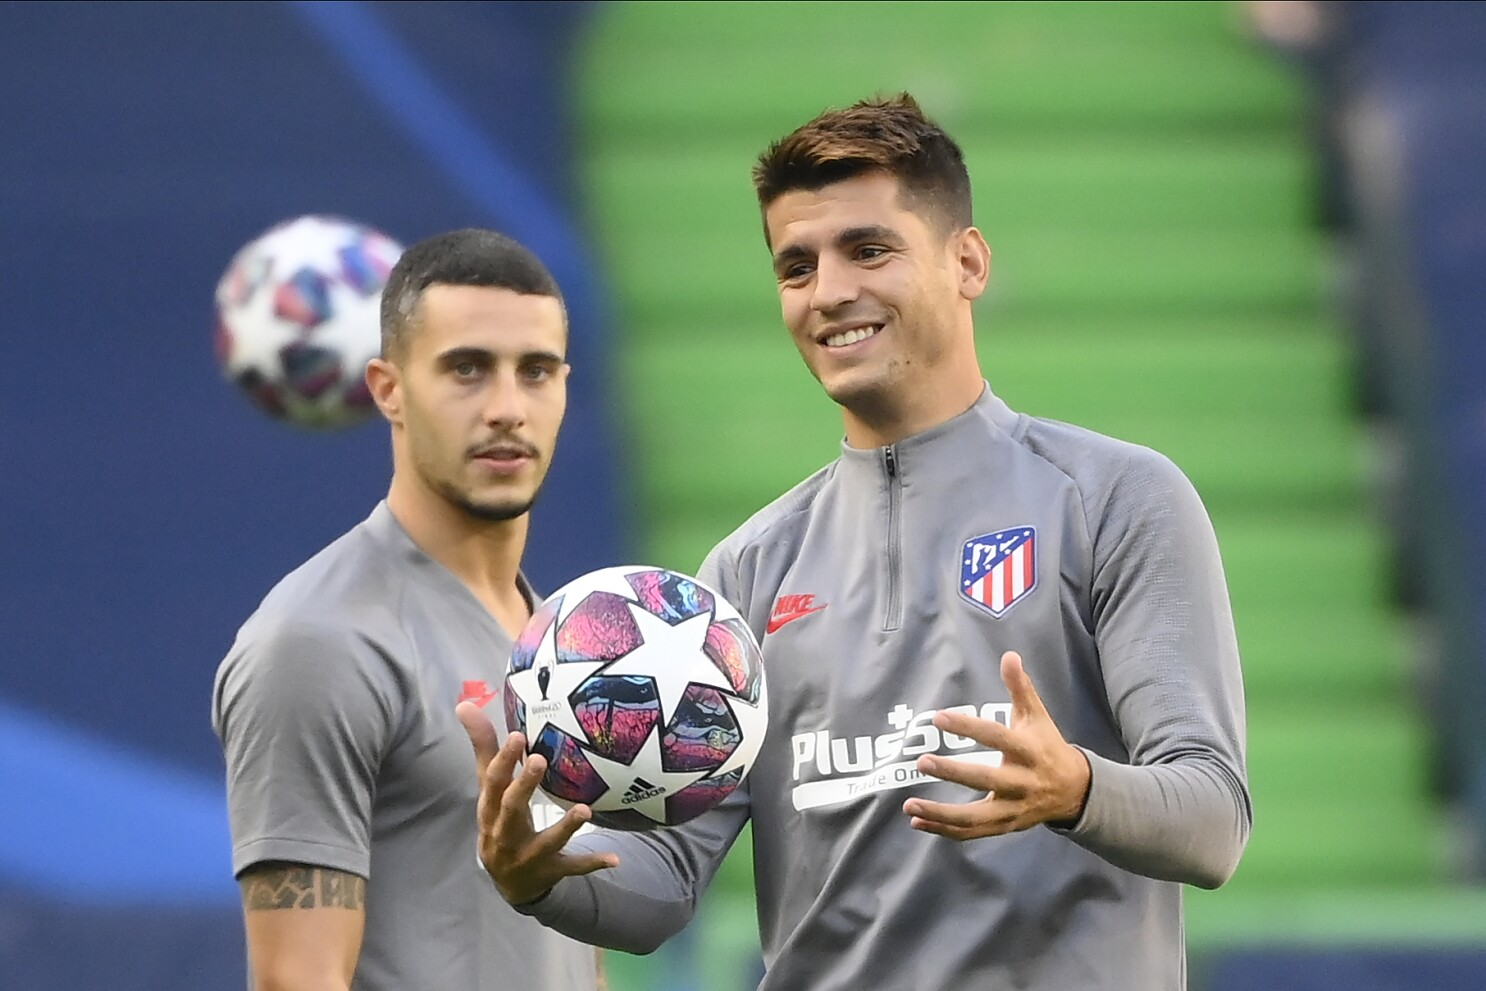 Morata Returns To Juventus On Loan From Atletico Madrid The San Diego Union Tribune